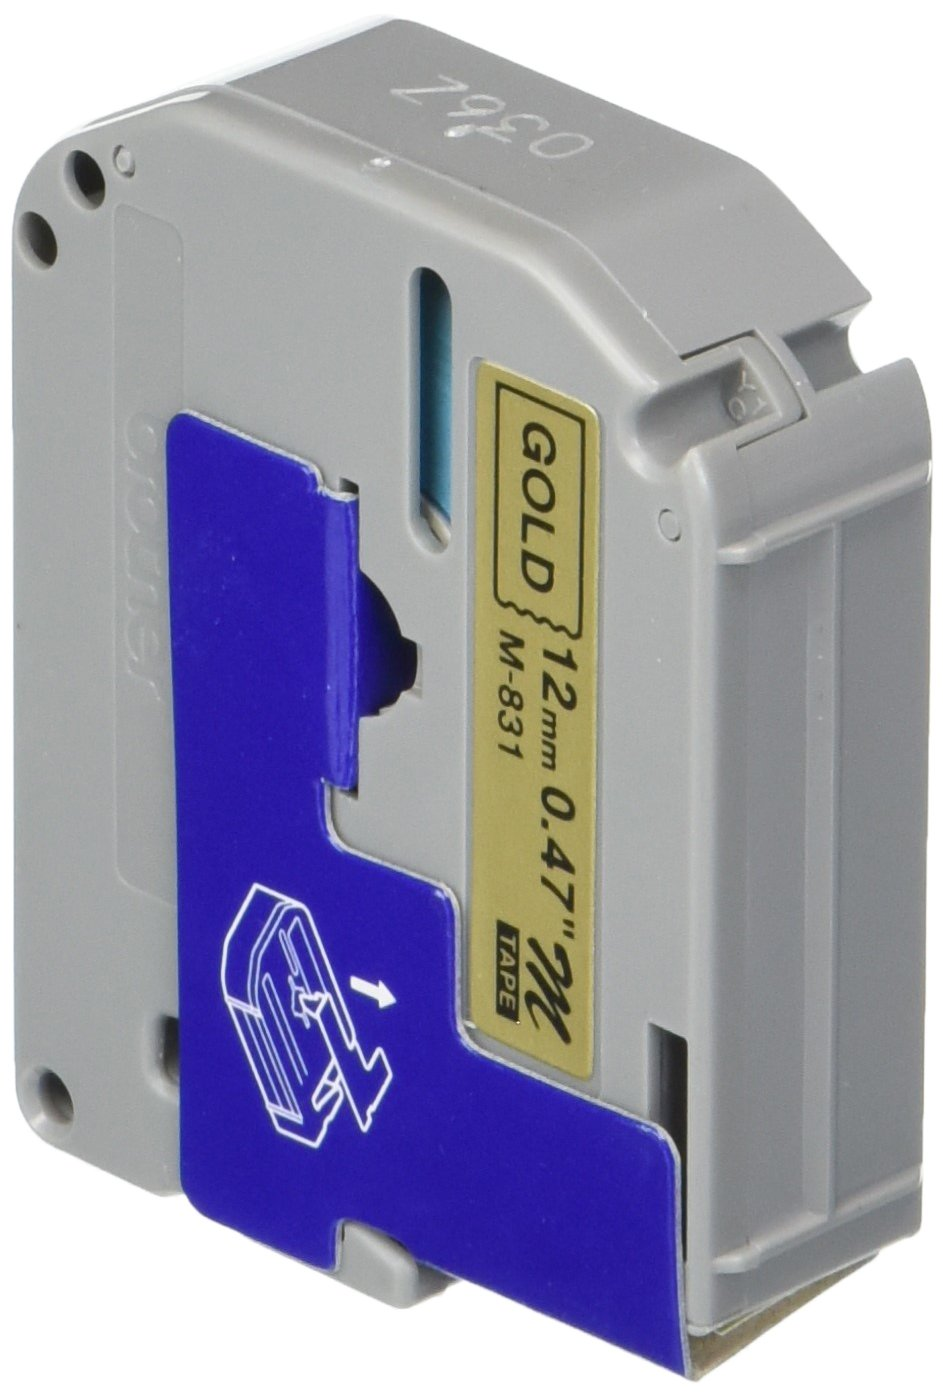 Brother M831 Non-Laminated Tape Cartridge - 0.5'' x 26' - 1 x Tape - Golden